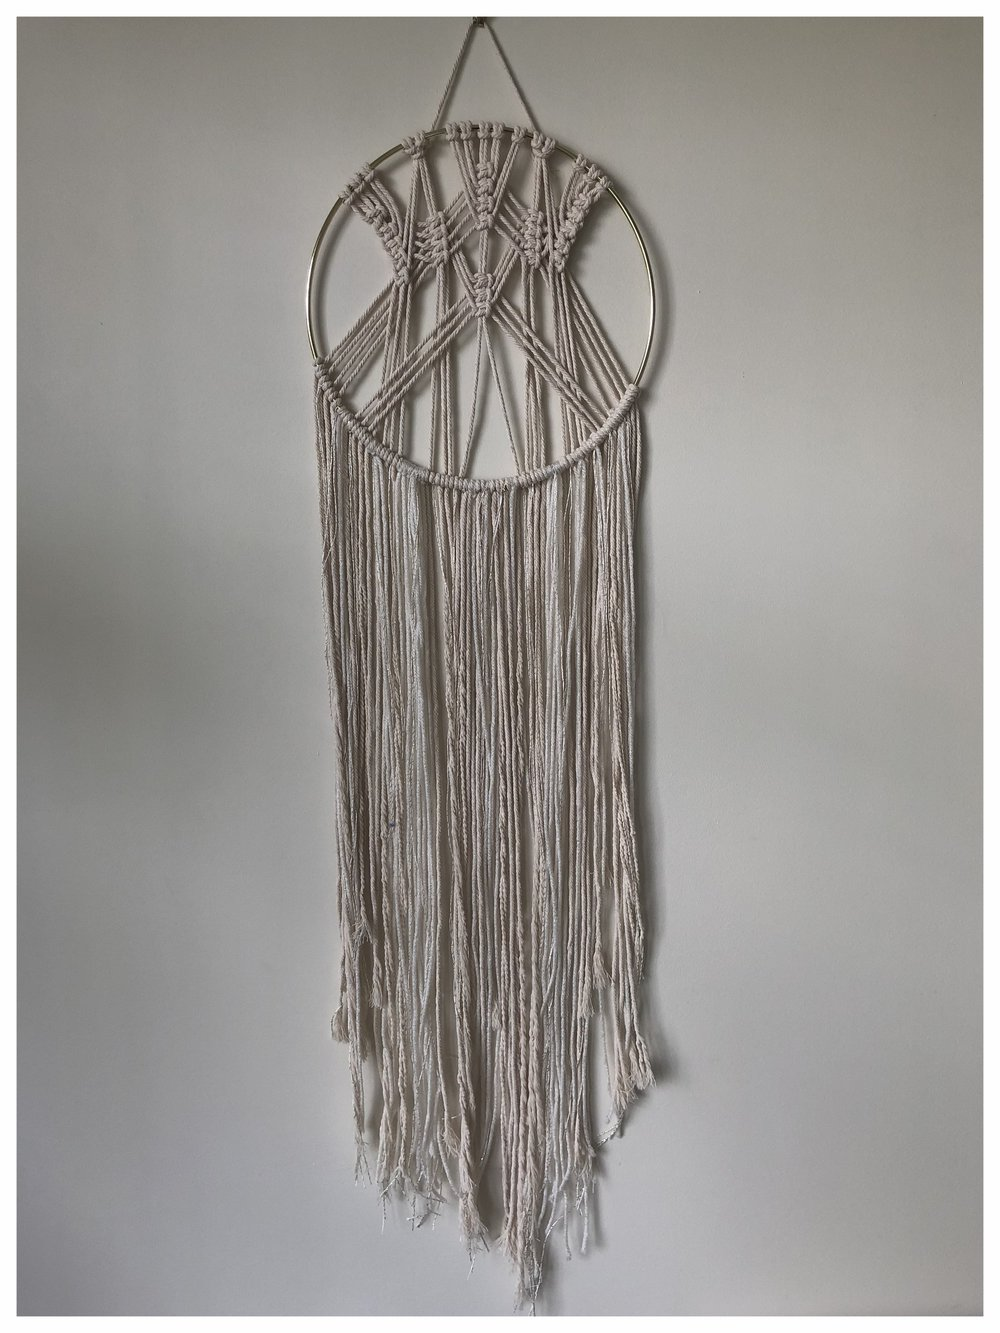 Handmade large modern macrame dream catcher with metallic and wool fringe detailing £61